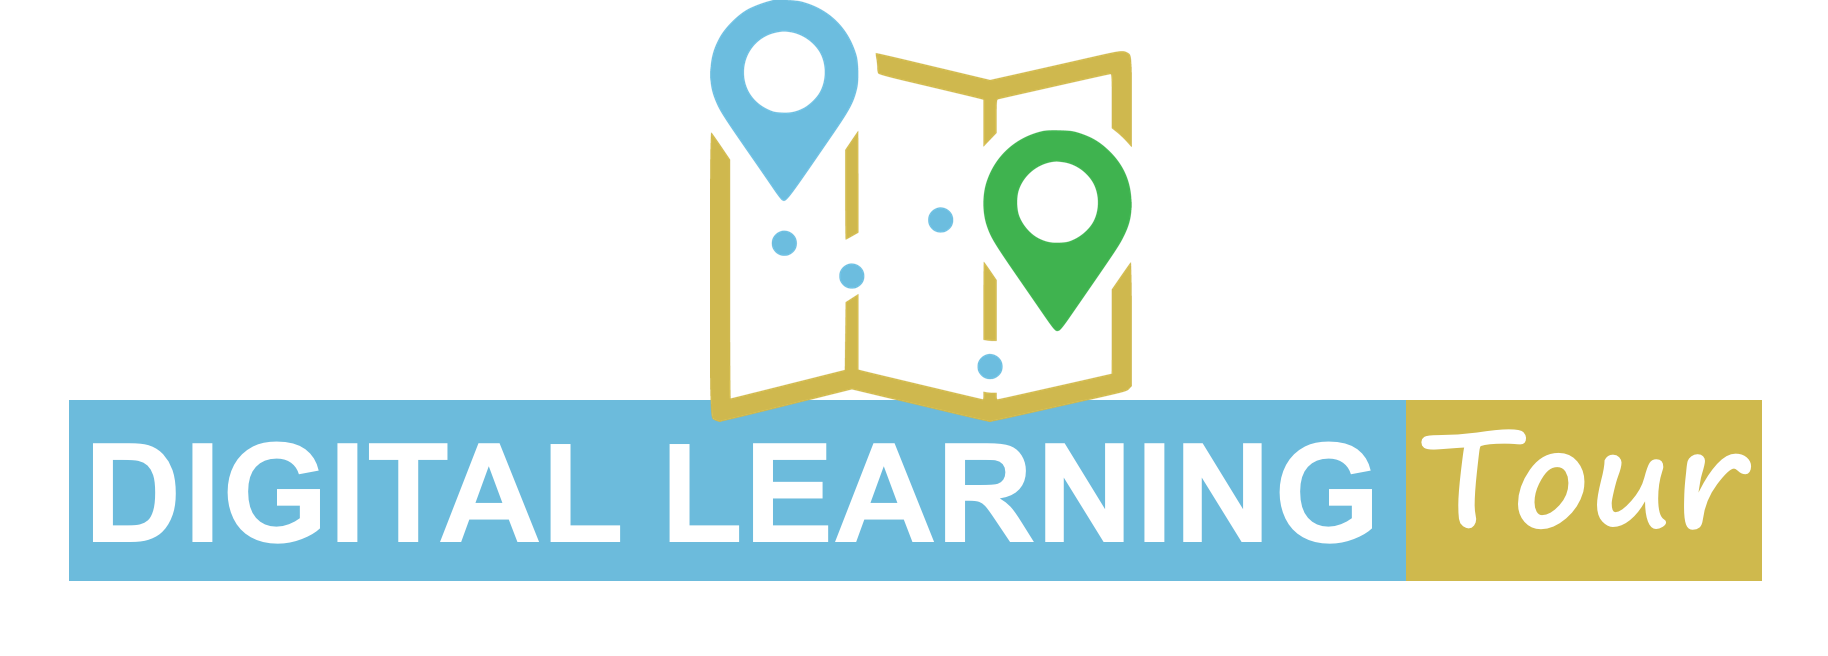 Digital Learning Tour